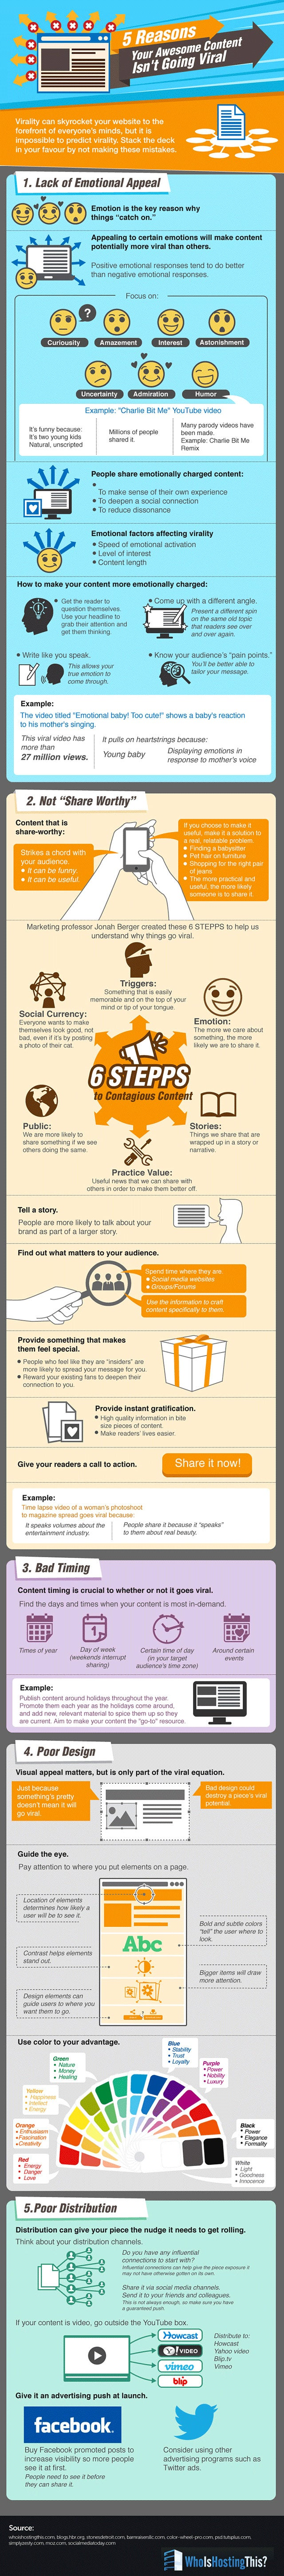 Why Your Content Isn't Going Viral (Infographic)